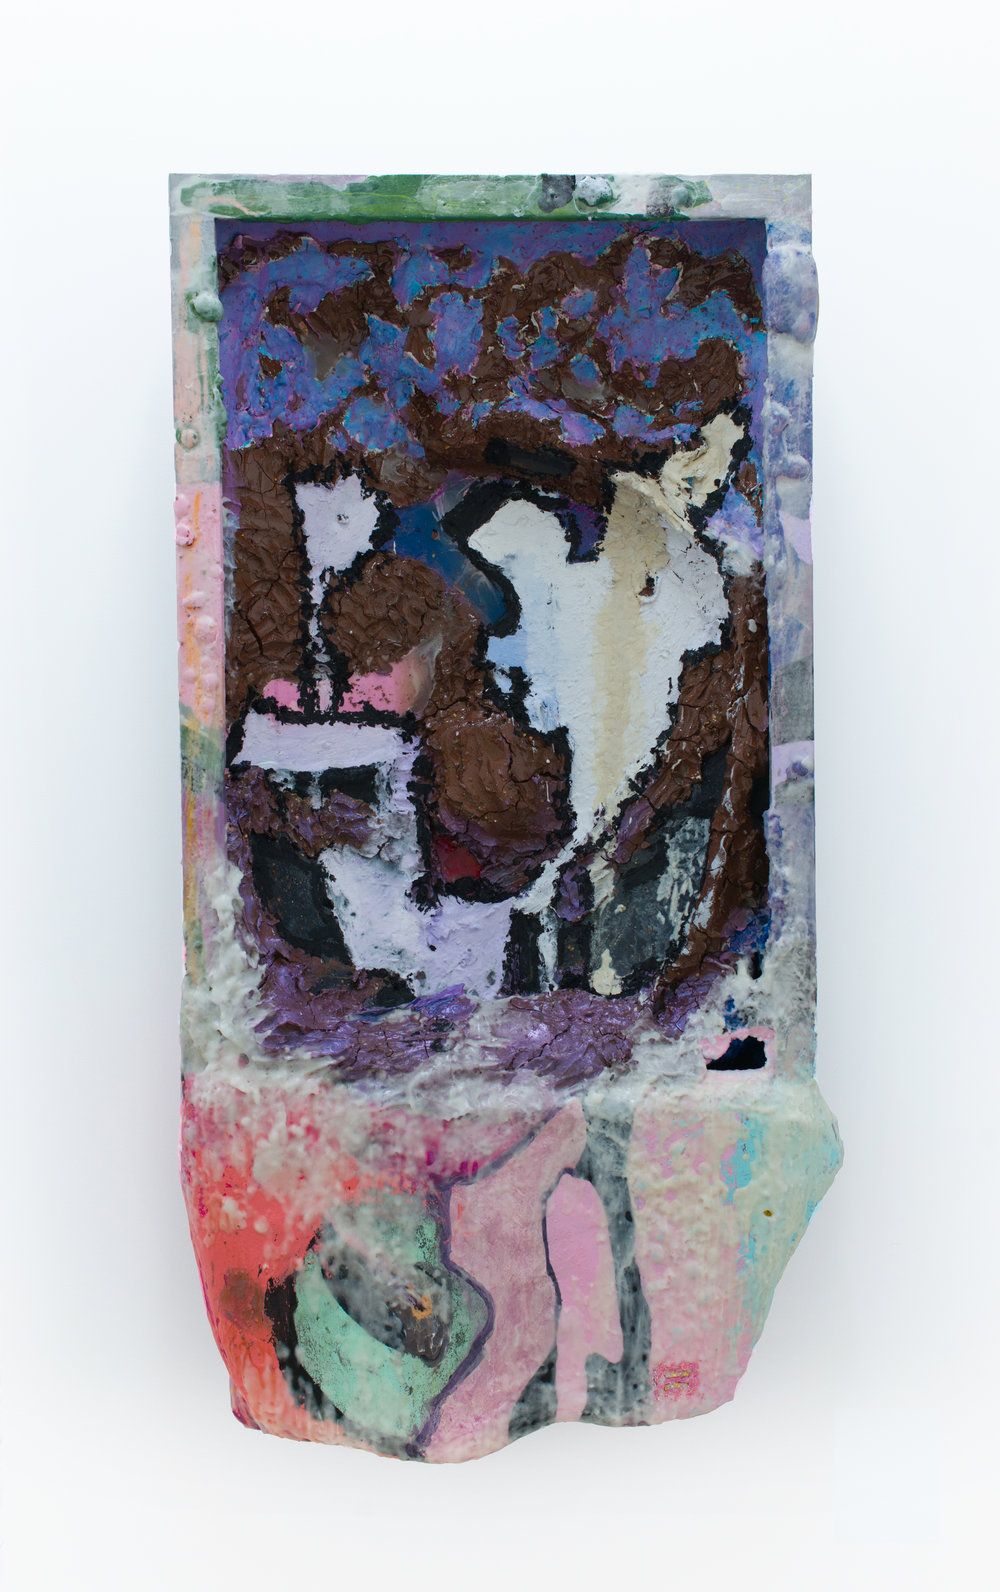 Mark Starling   Red Hot Wave Rider,  2017 Crushed red pepper flakes, dye, clay, resin, oil paint, oil stick, acrylic, wax, colored pencil, polyurethane and iridescent powder on steel casket lid 56 x 30 x 8 inches